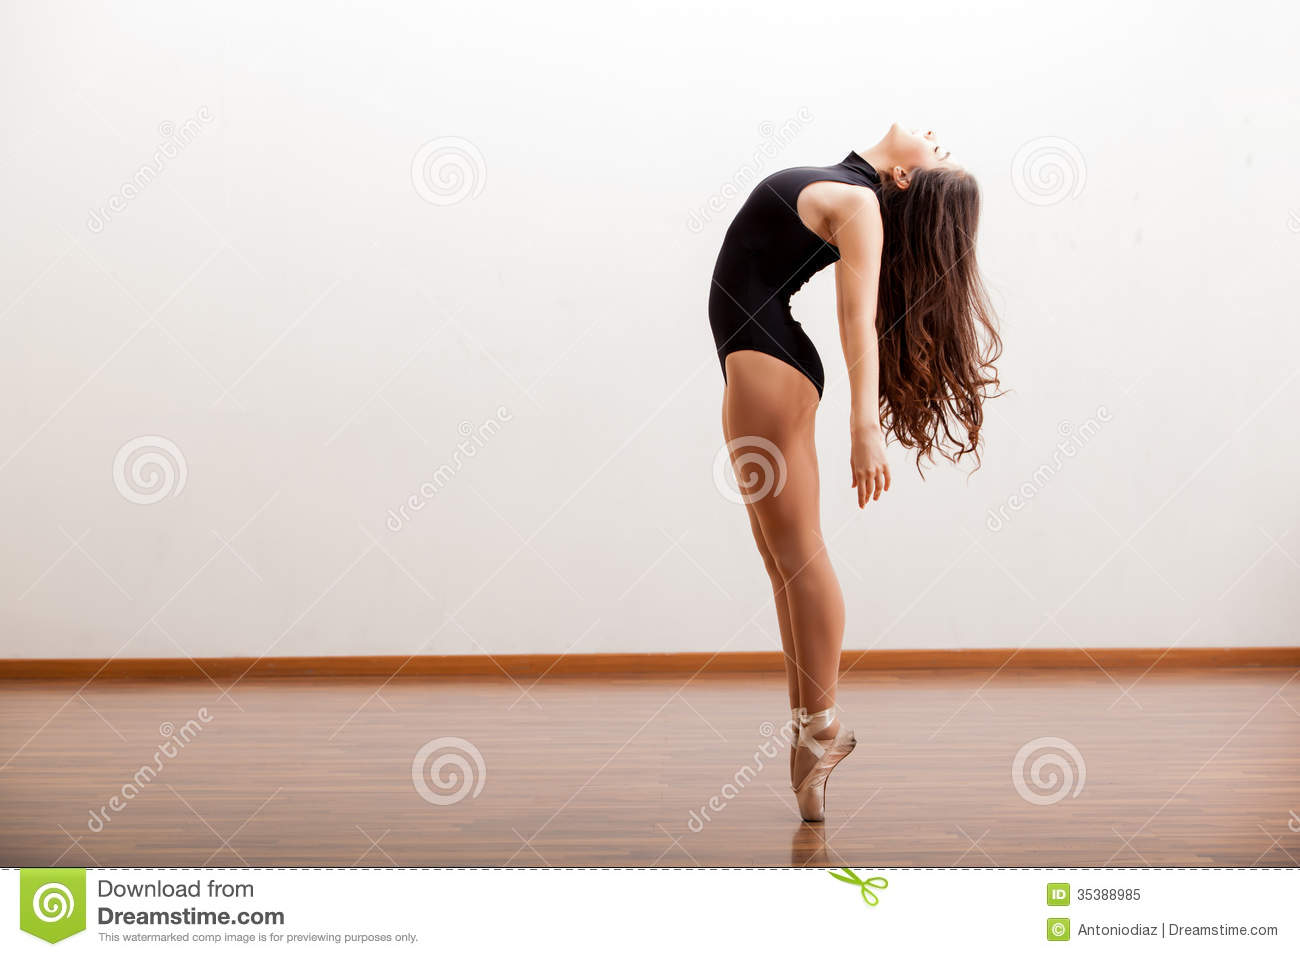 Gorgeous ballet dancer maintaining balance during a dance routine in a